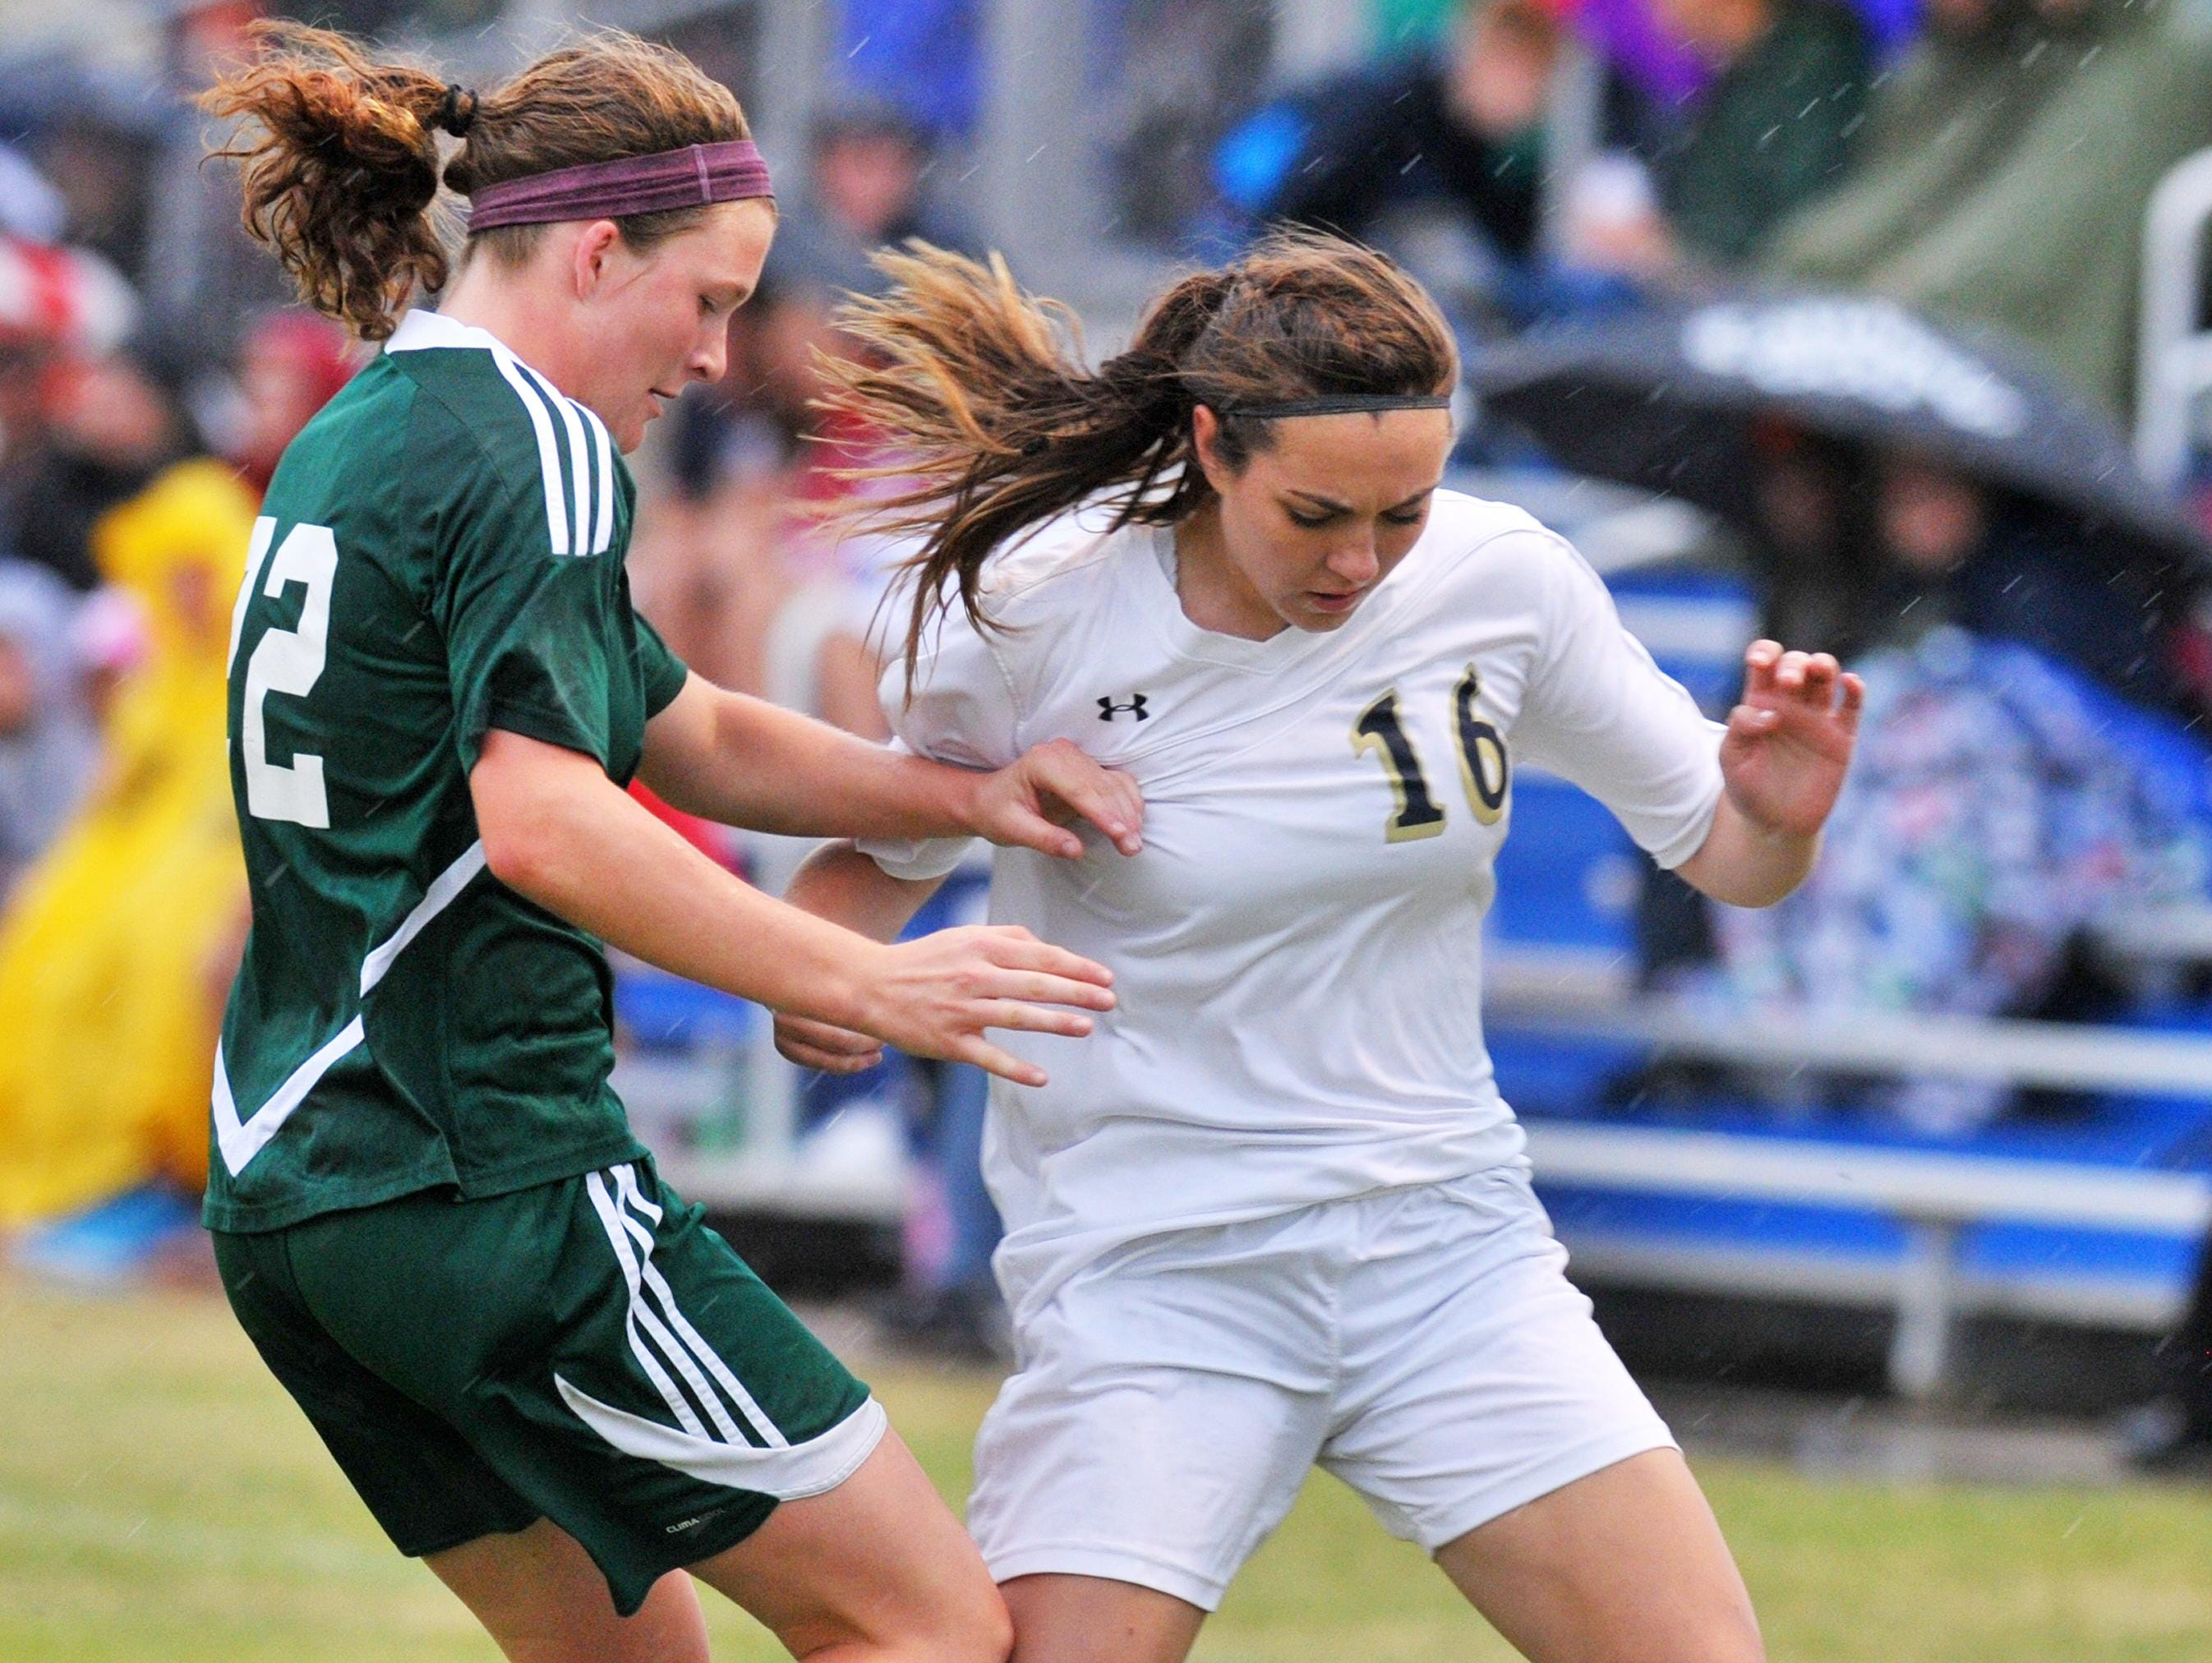 D.C. Everest senior Gabi Kitchell, left, helped lead the Evergreens to their first WIAA Division 1 state title this spring. She has been named the Gannett Central Wisconsin girls soccer player of the year.